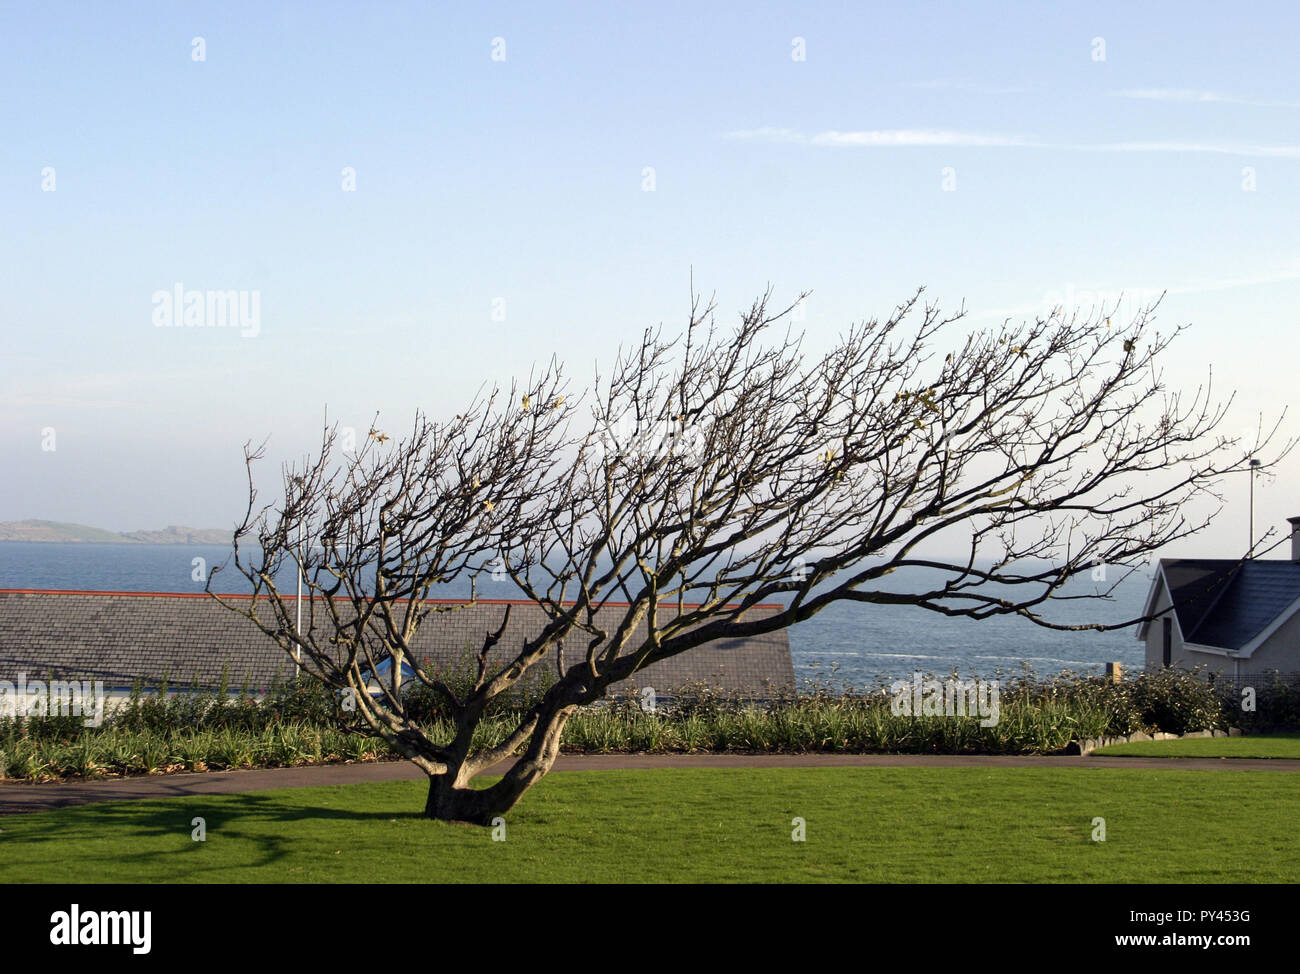 It can be very breezy in the Northern Irish town of Portrush as this tree can testify. - Stock Image